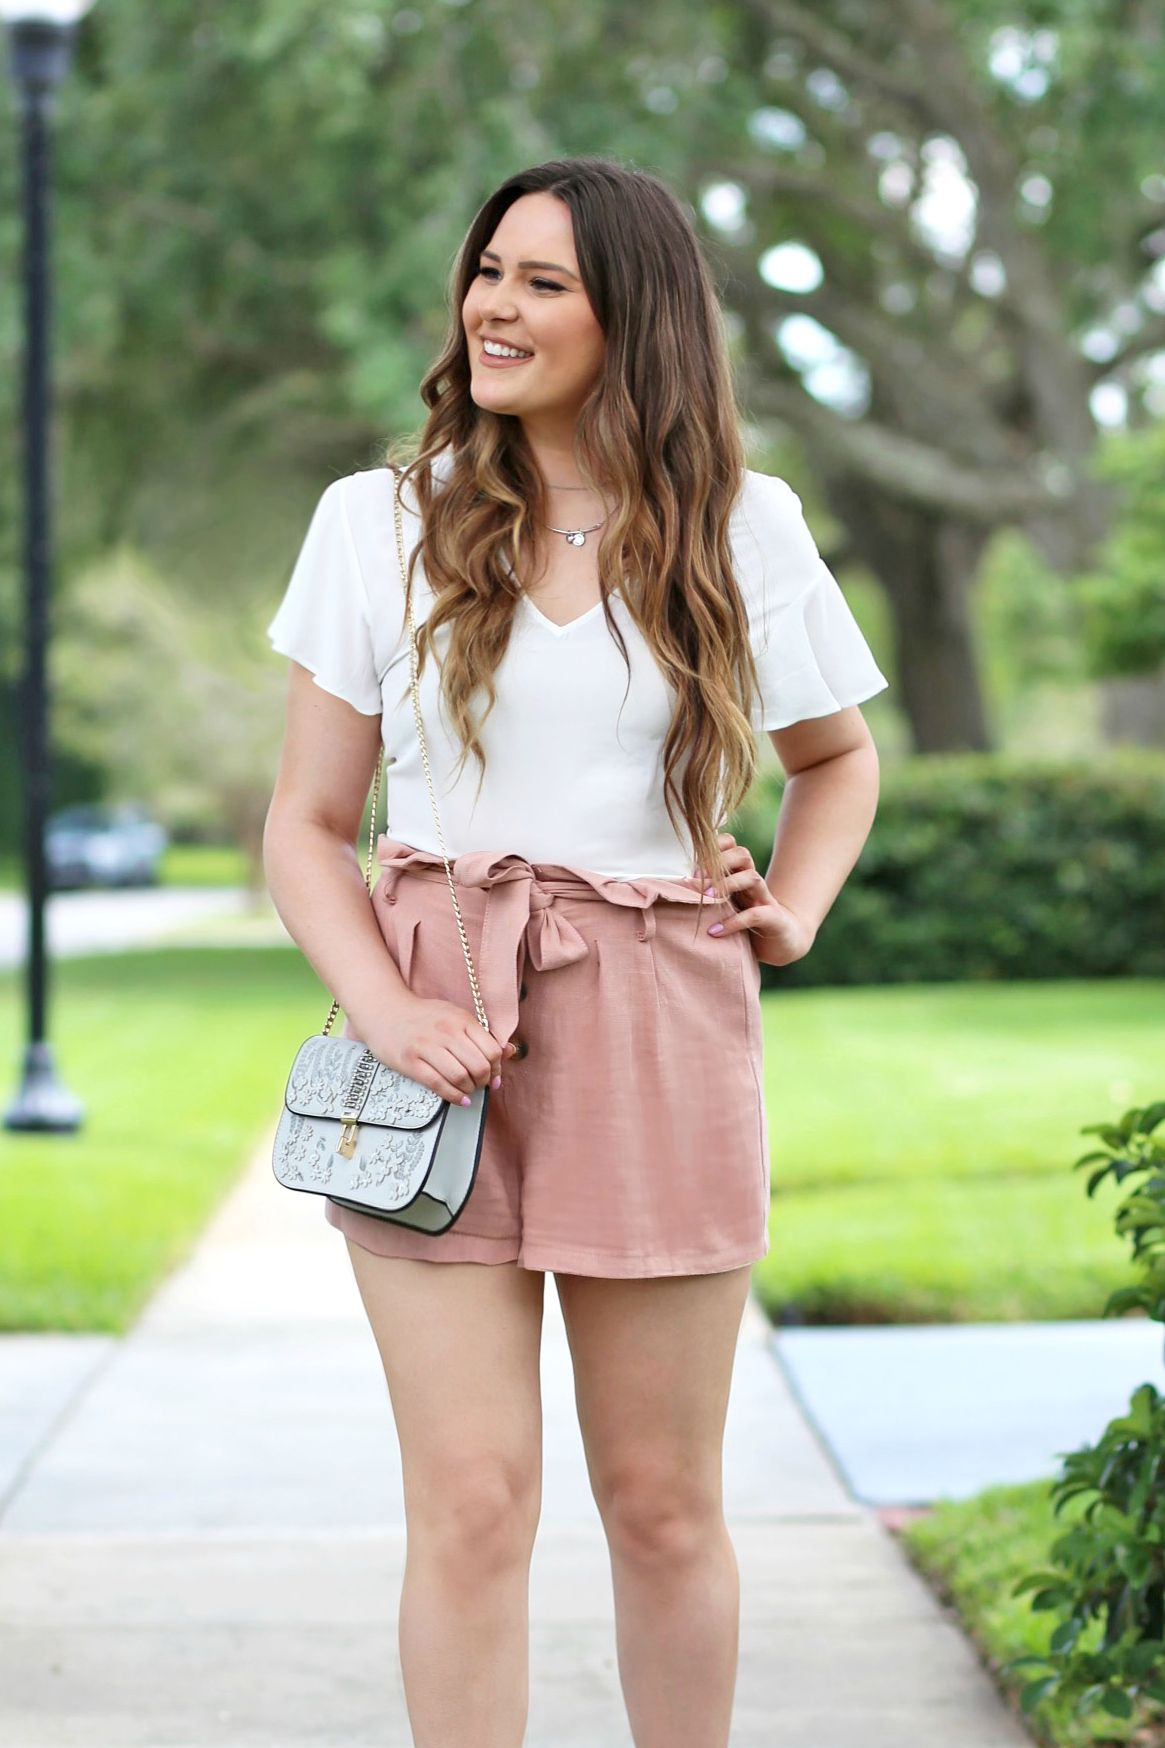 b9a50e633c34 Orlando, Florida blogger Michelle Kehoe of fashion, beauty and lifestyle  blog Mash Elle shares what to wear when it's hot outside!